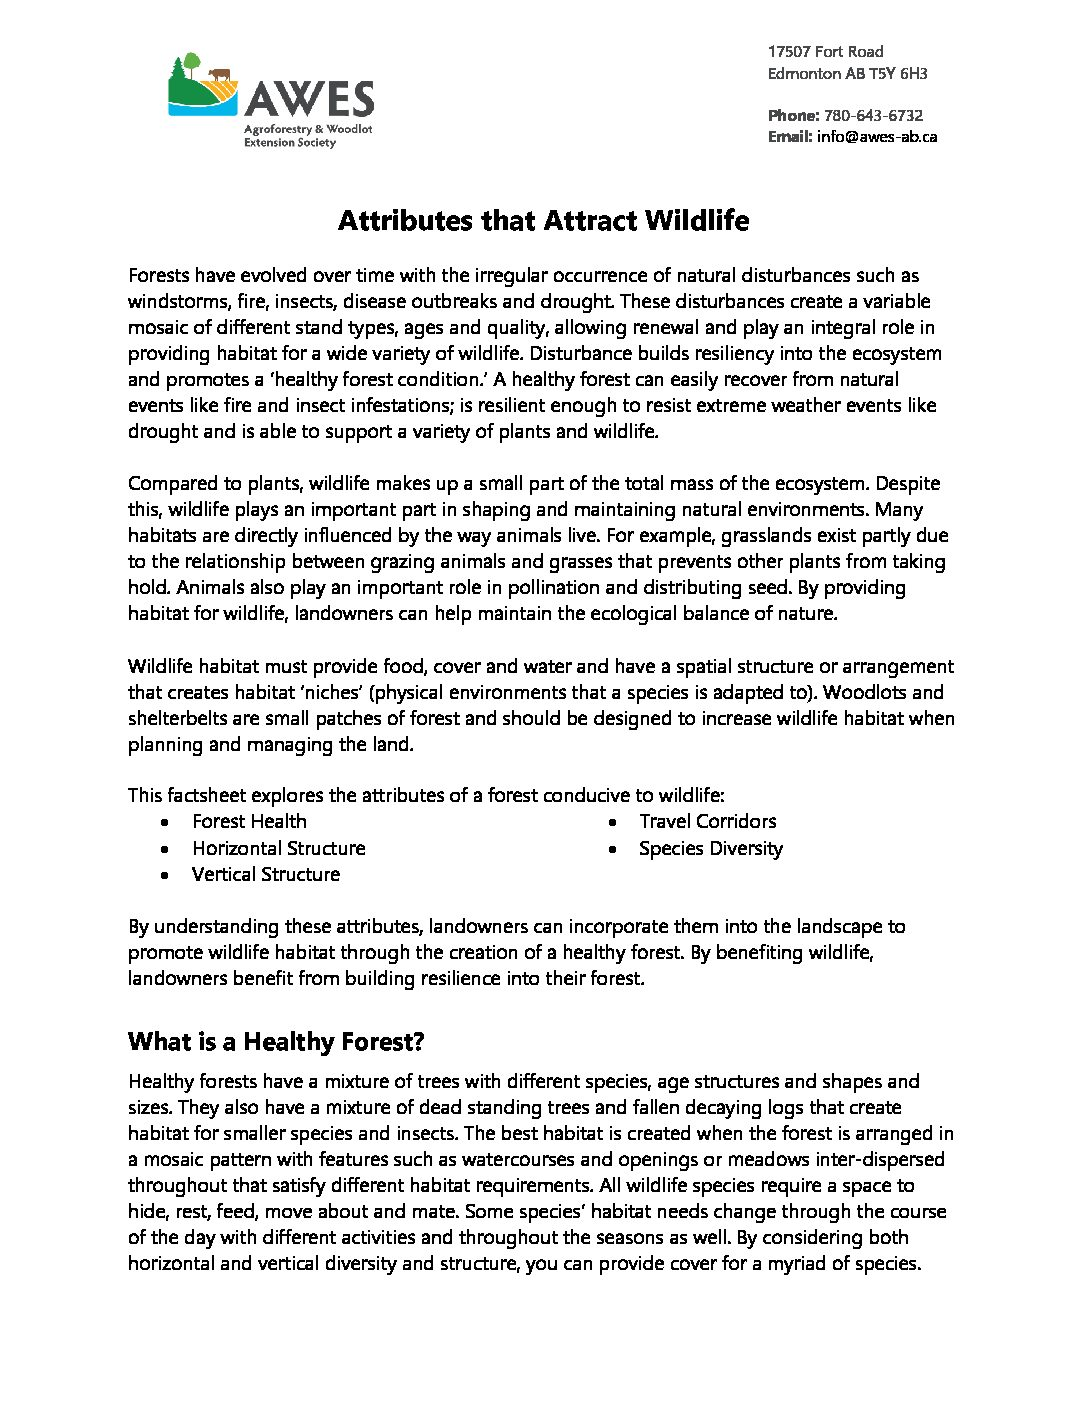 Attributes that Attract Wildlife